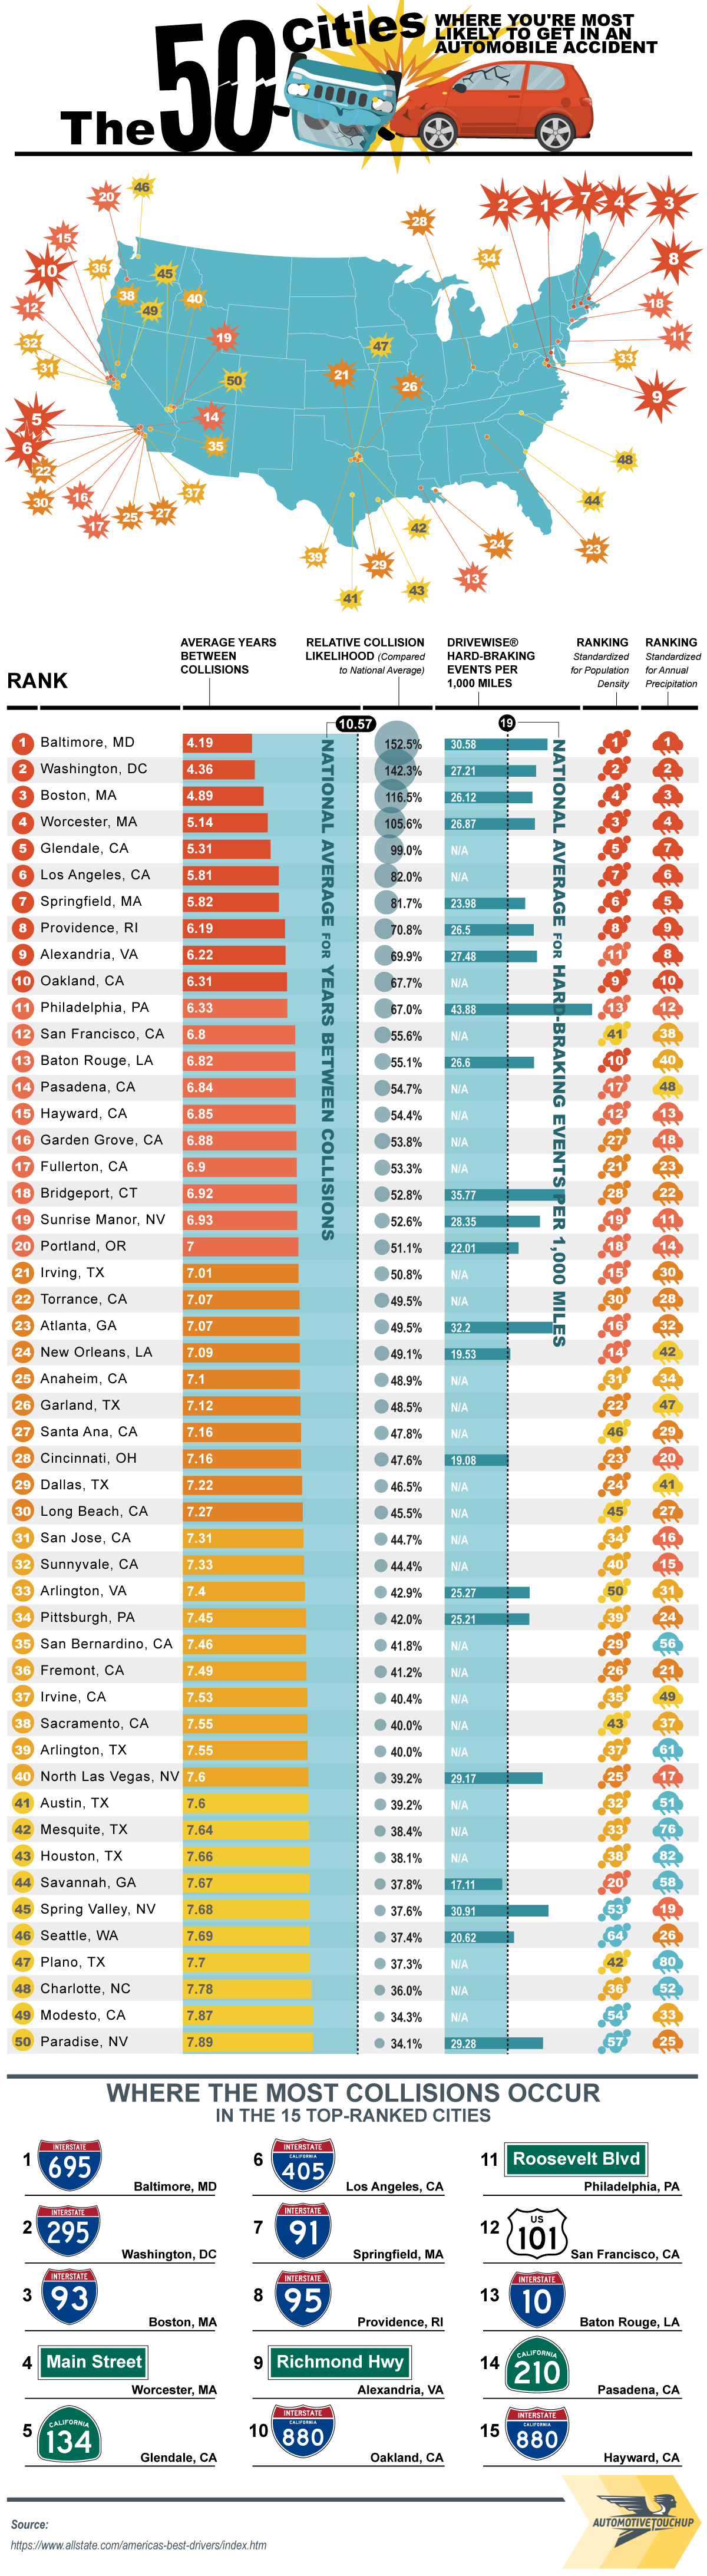 The 50 Cities Where You're Most Likely to Get in an Automobile Accident - Automotive Touch Up Paint - Infographic